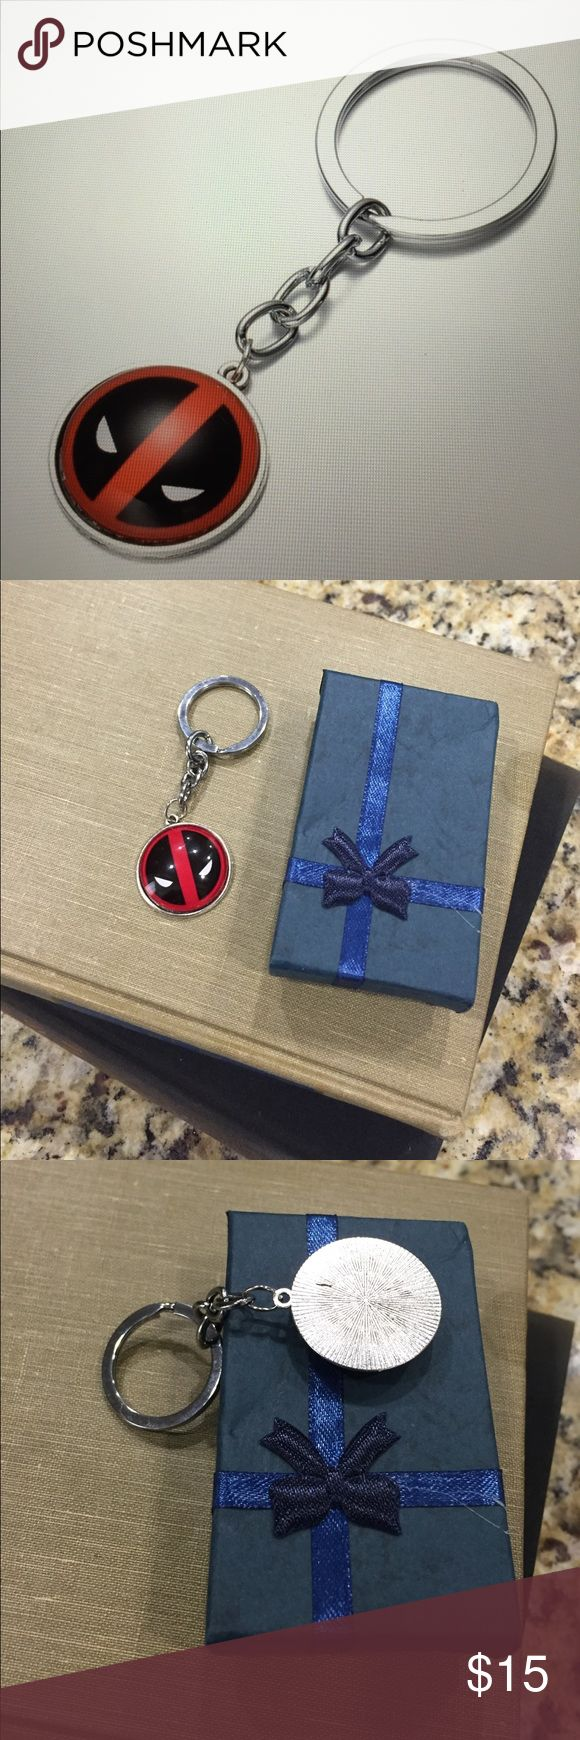 Deadpool Alloy Dome Keychain/New Very cool Deadpool keychain, about the size of a quarter and comes with a nice gift box Deadpool Accessories Key & Card Holders